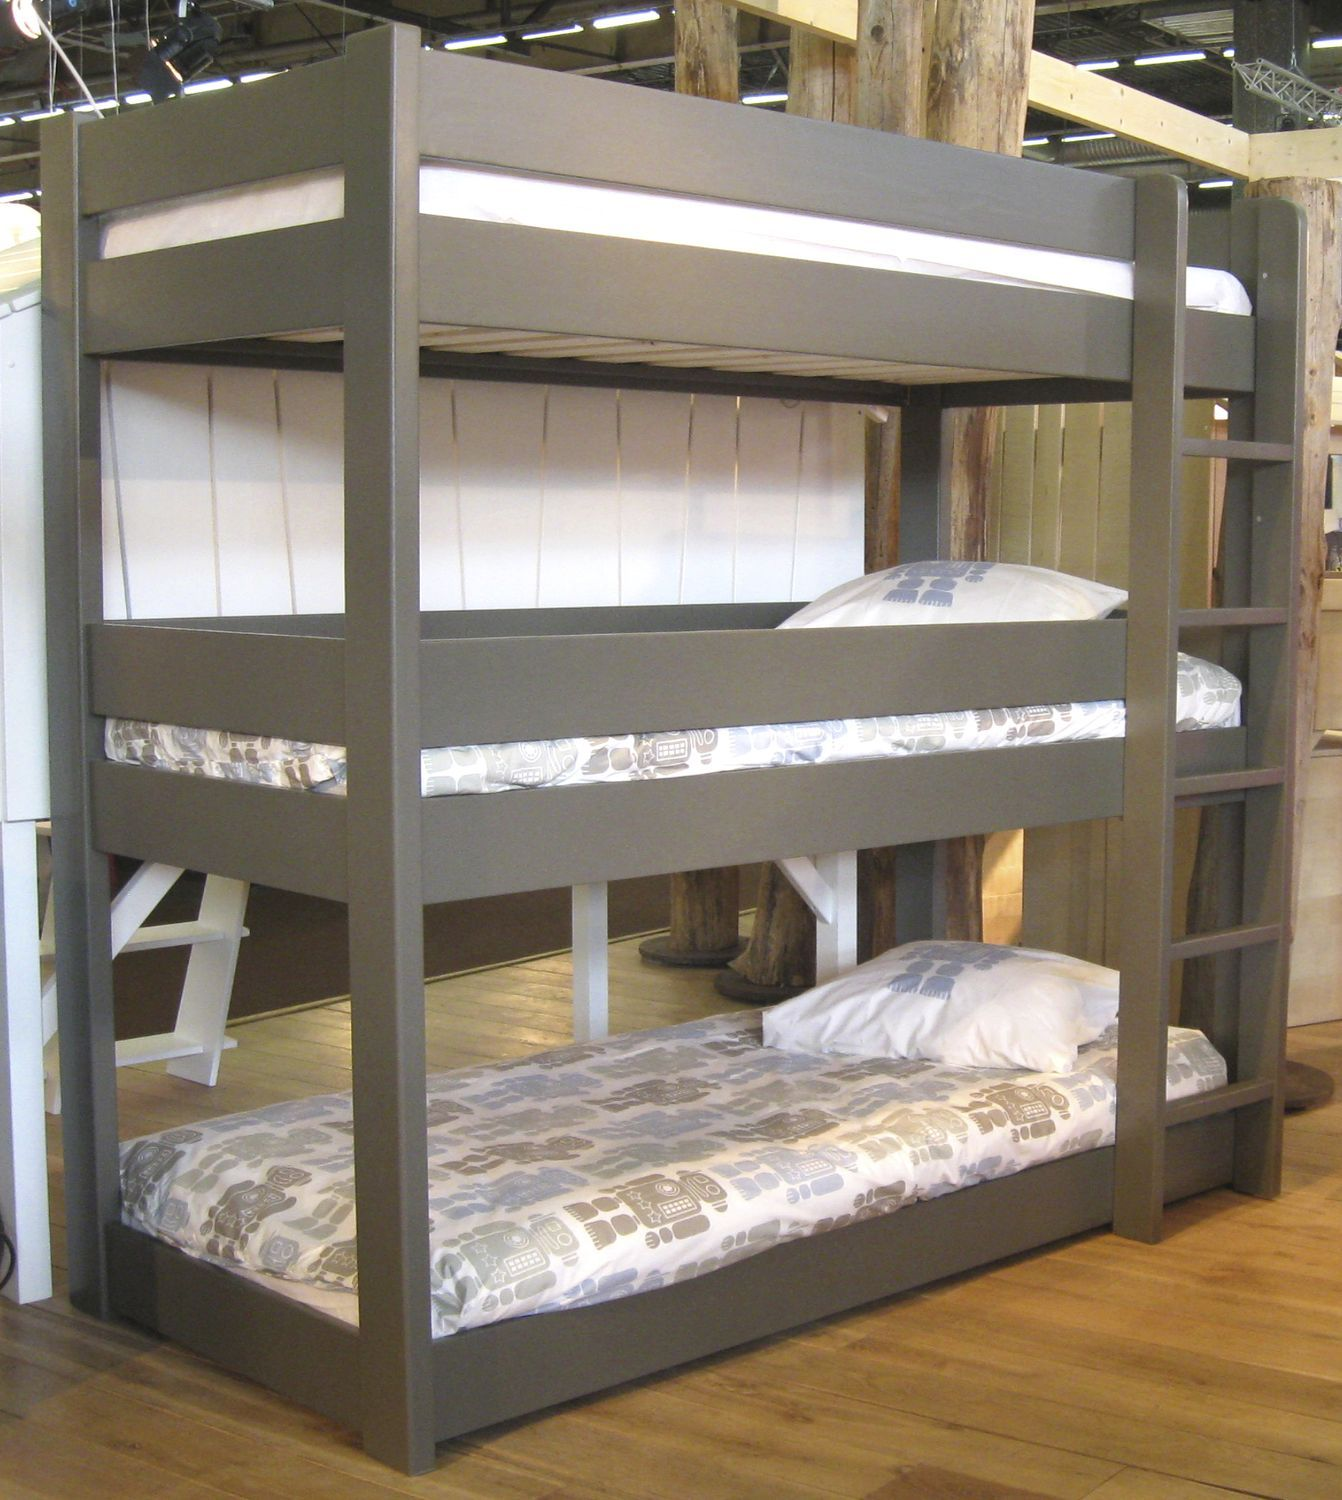 Gorgeous Three Levels Beds With Grey Polished Bed Frames Added